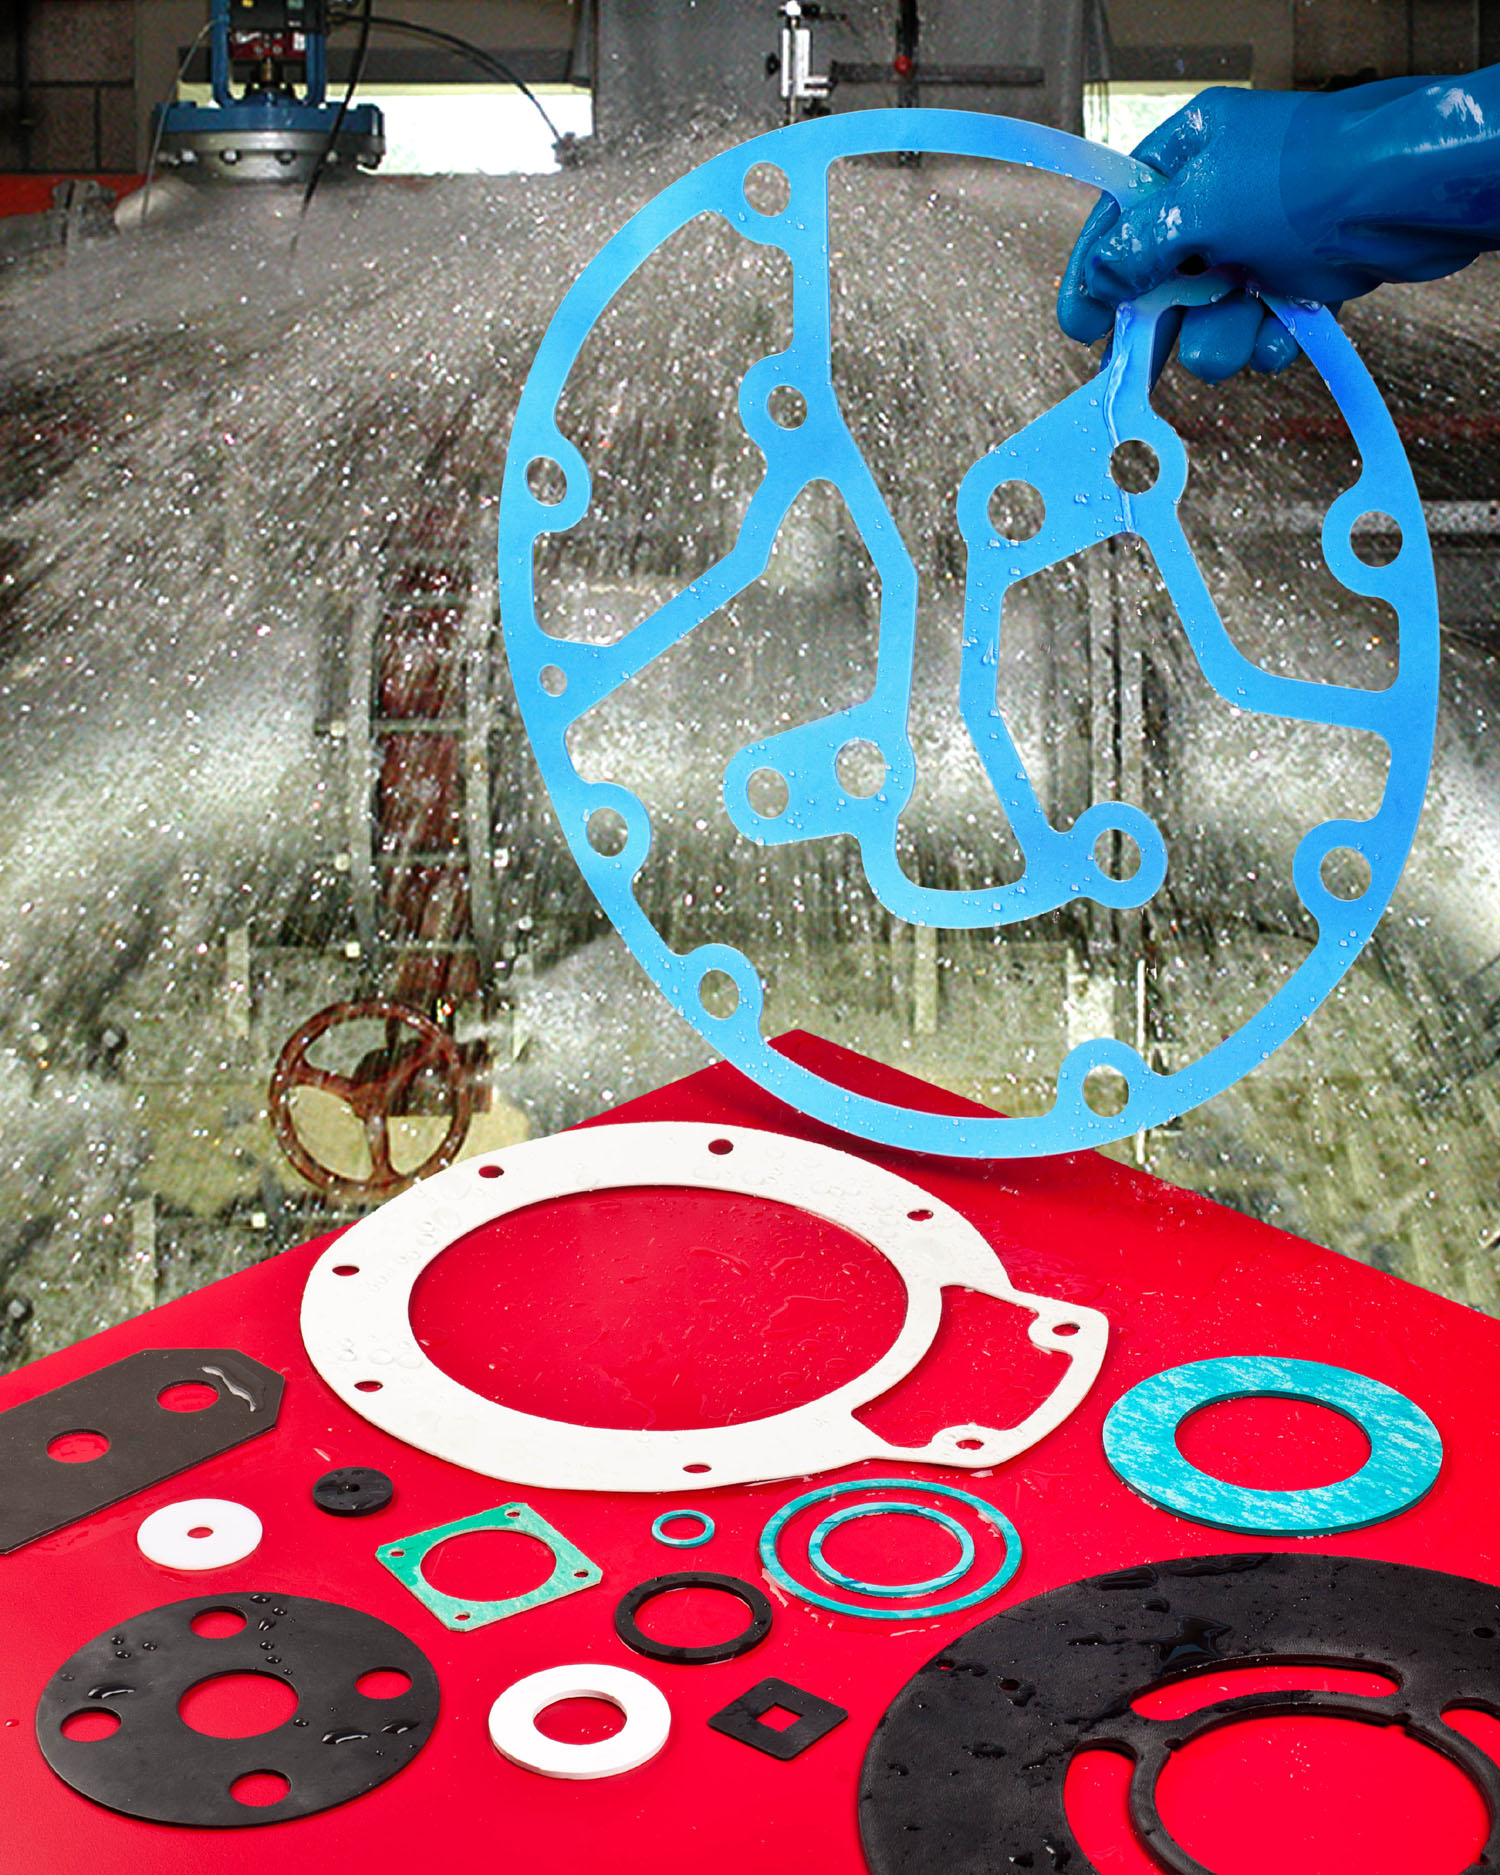 Custom Gaskets Match Fluid Handling Requirements